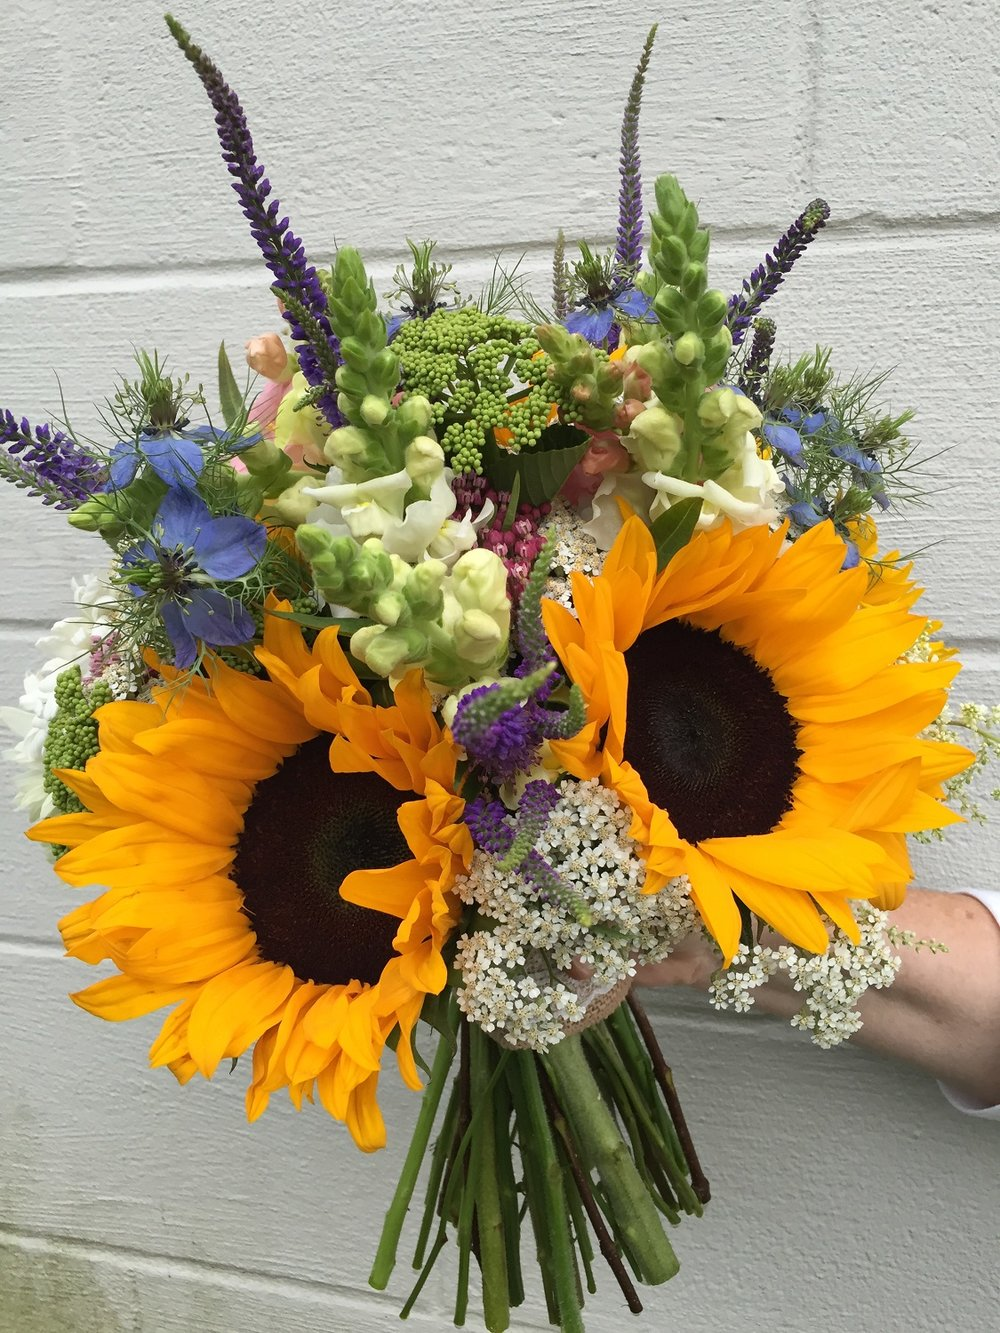 Katie's bouquet—snapdragon, yarrow, love-in-a-mist, salvia, viburnum, sunflower